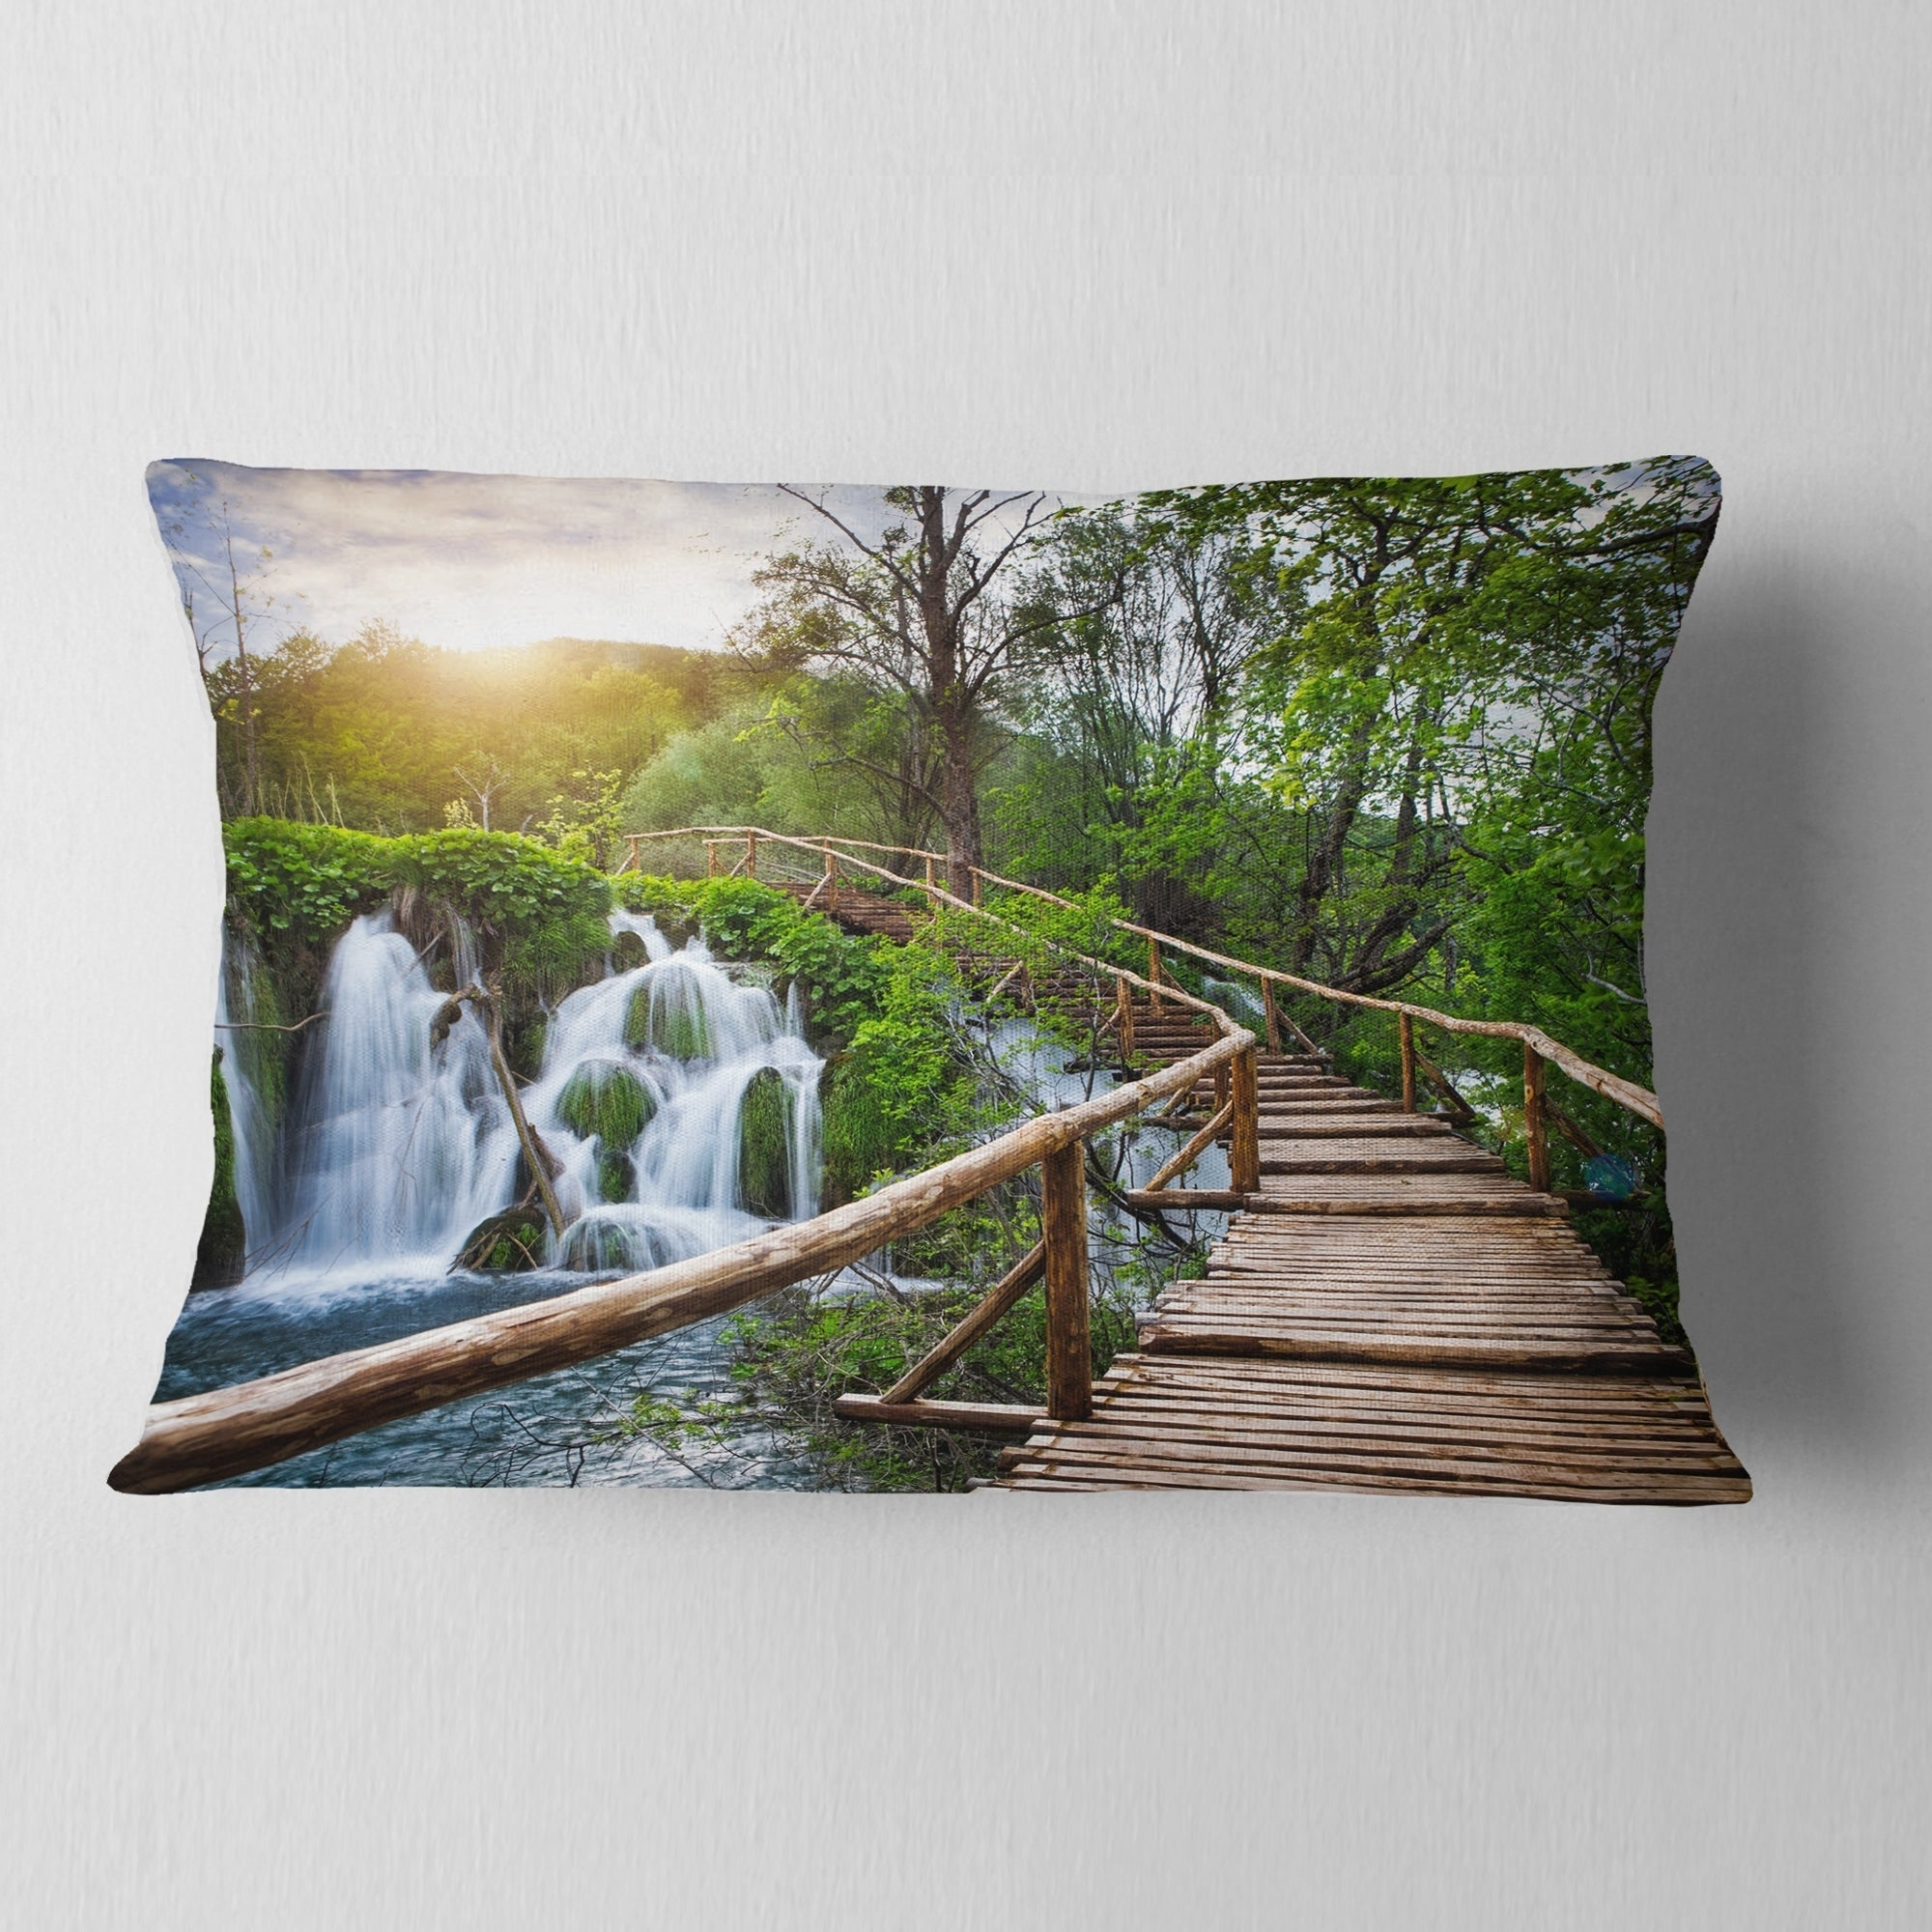 Designart Pathway In Plitvice Lakes Landscape Photography Throw Pillow Overstock 20890298